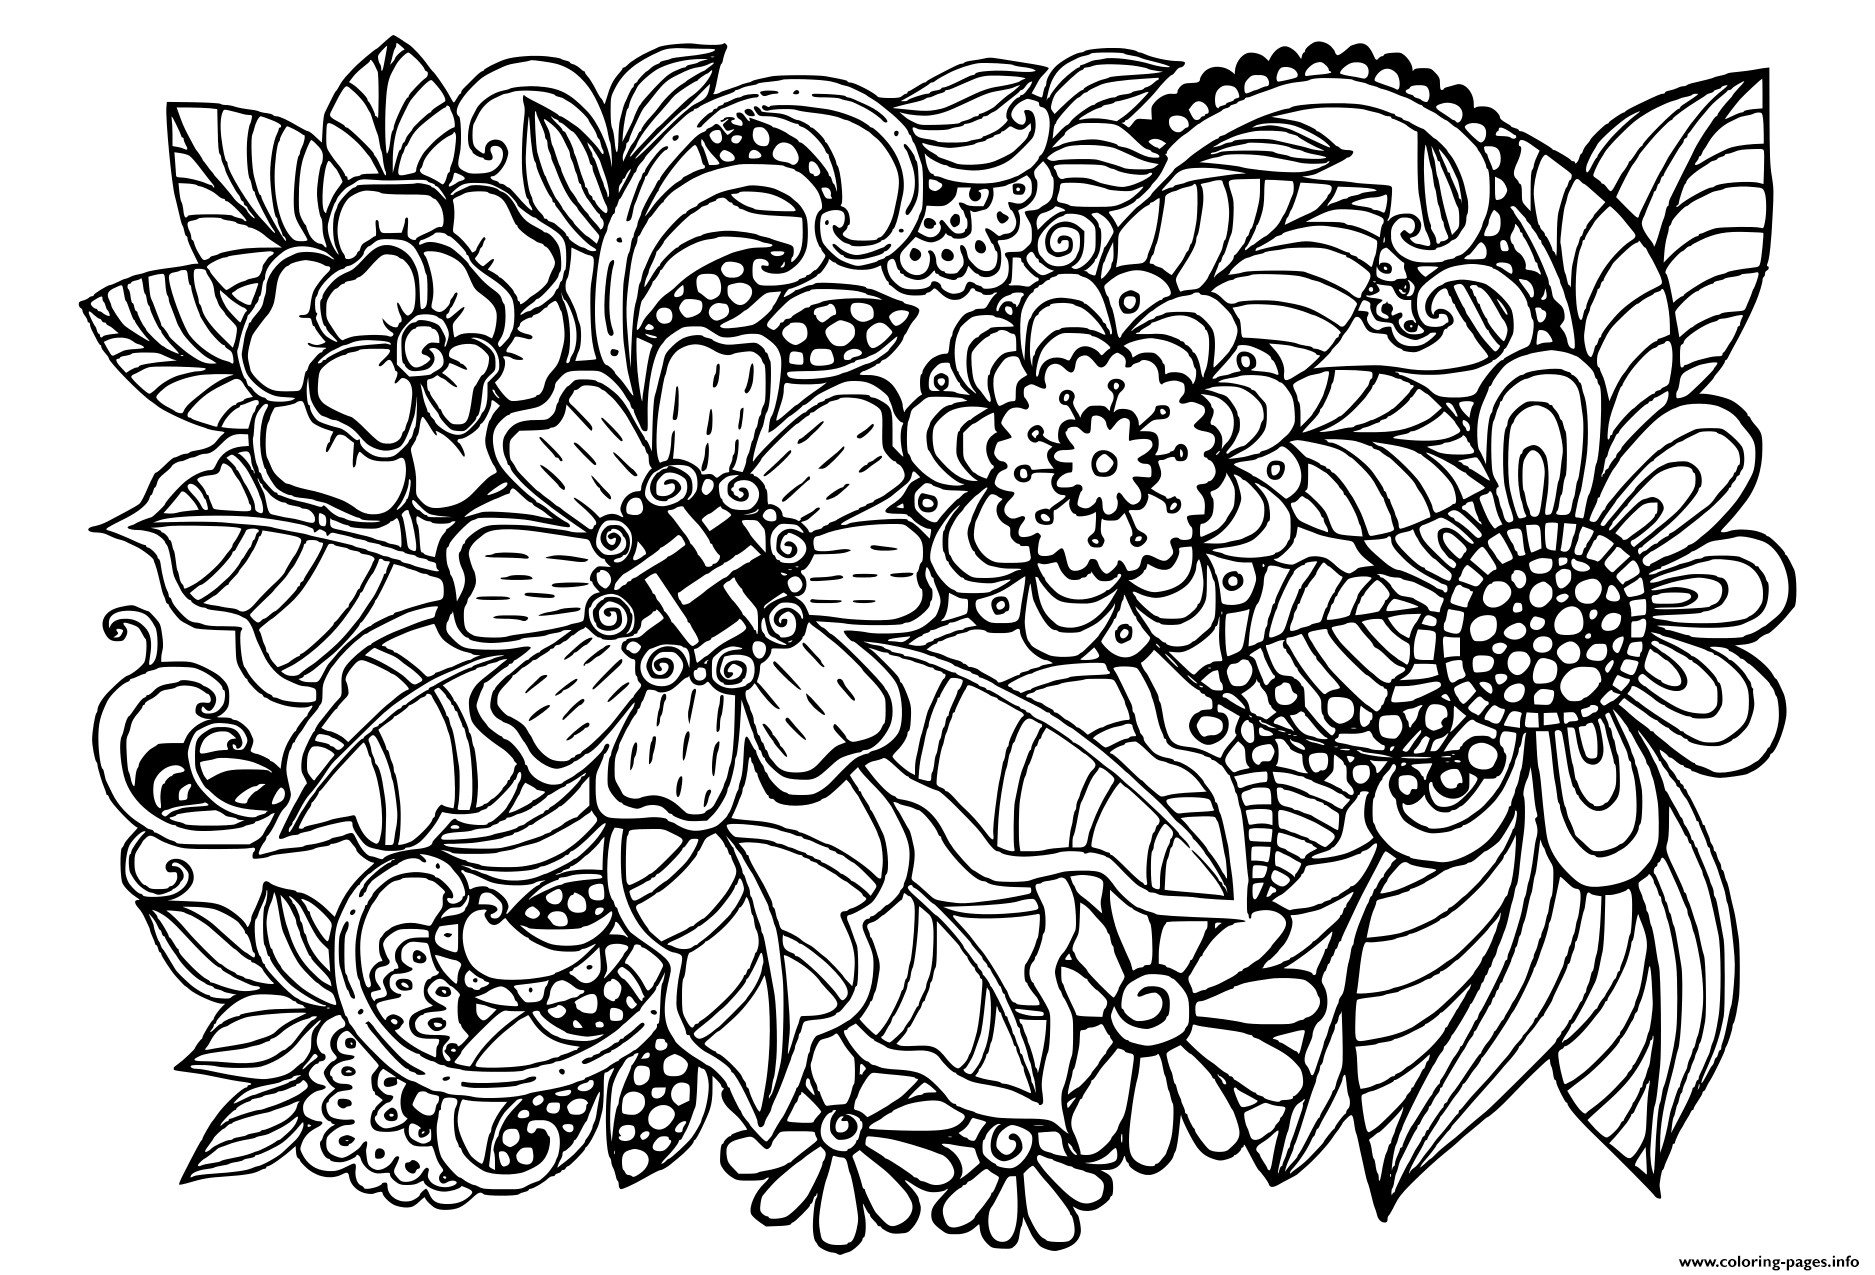 pattern coloring pages for adults cool geometric design coloring pages getcoloringpagescom coloring adults for pages pattern